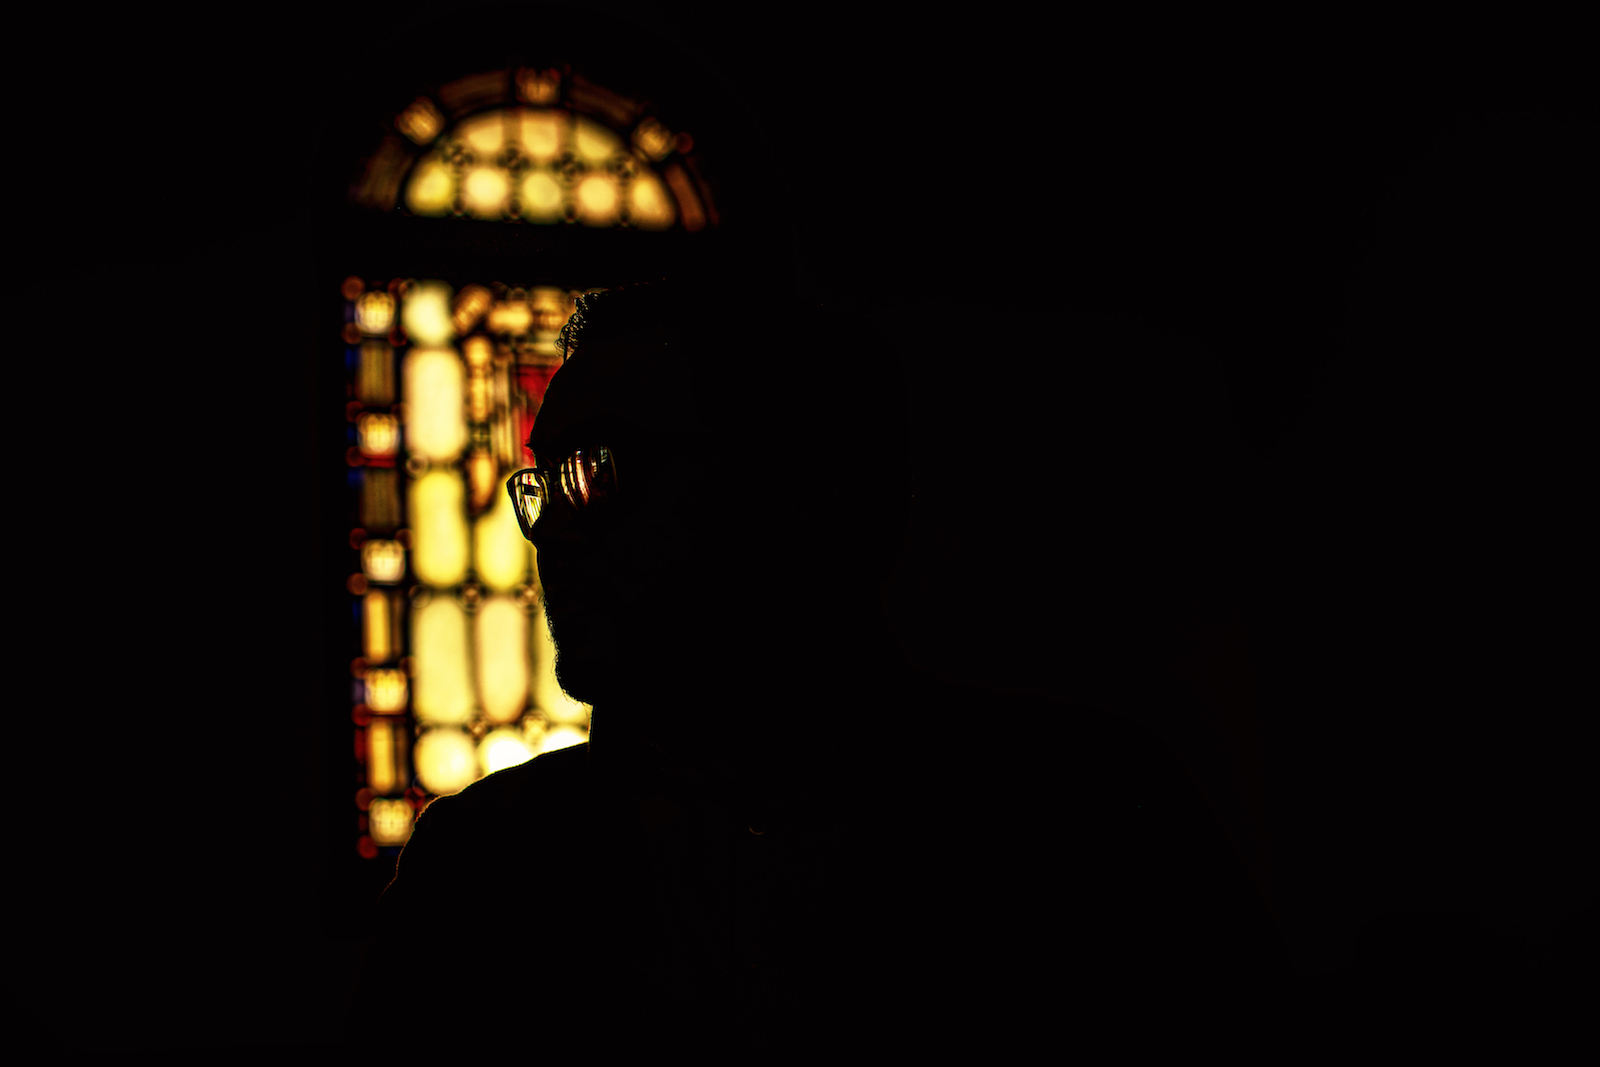 sillouette of man in front of stained glass window